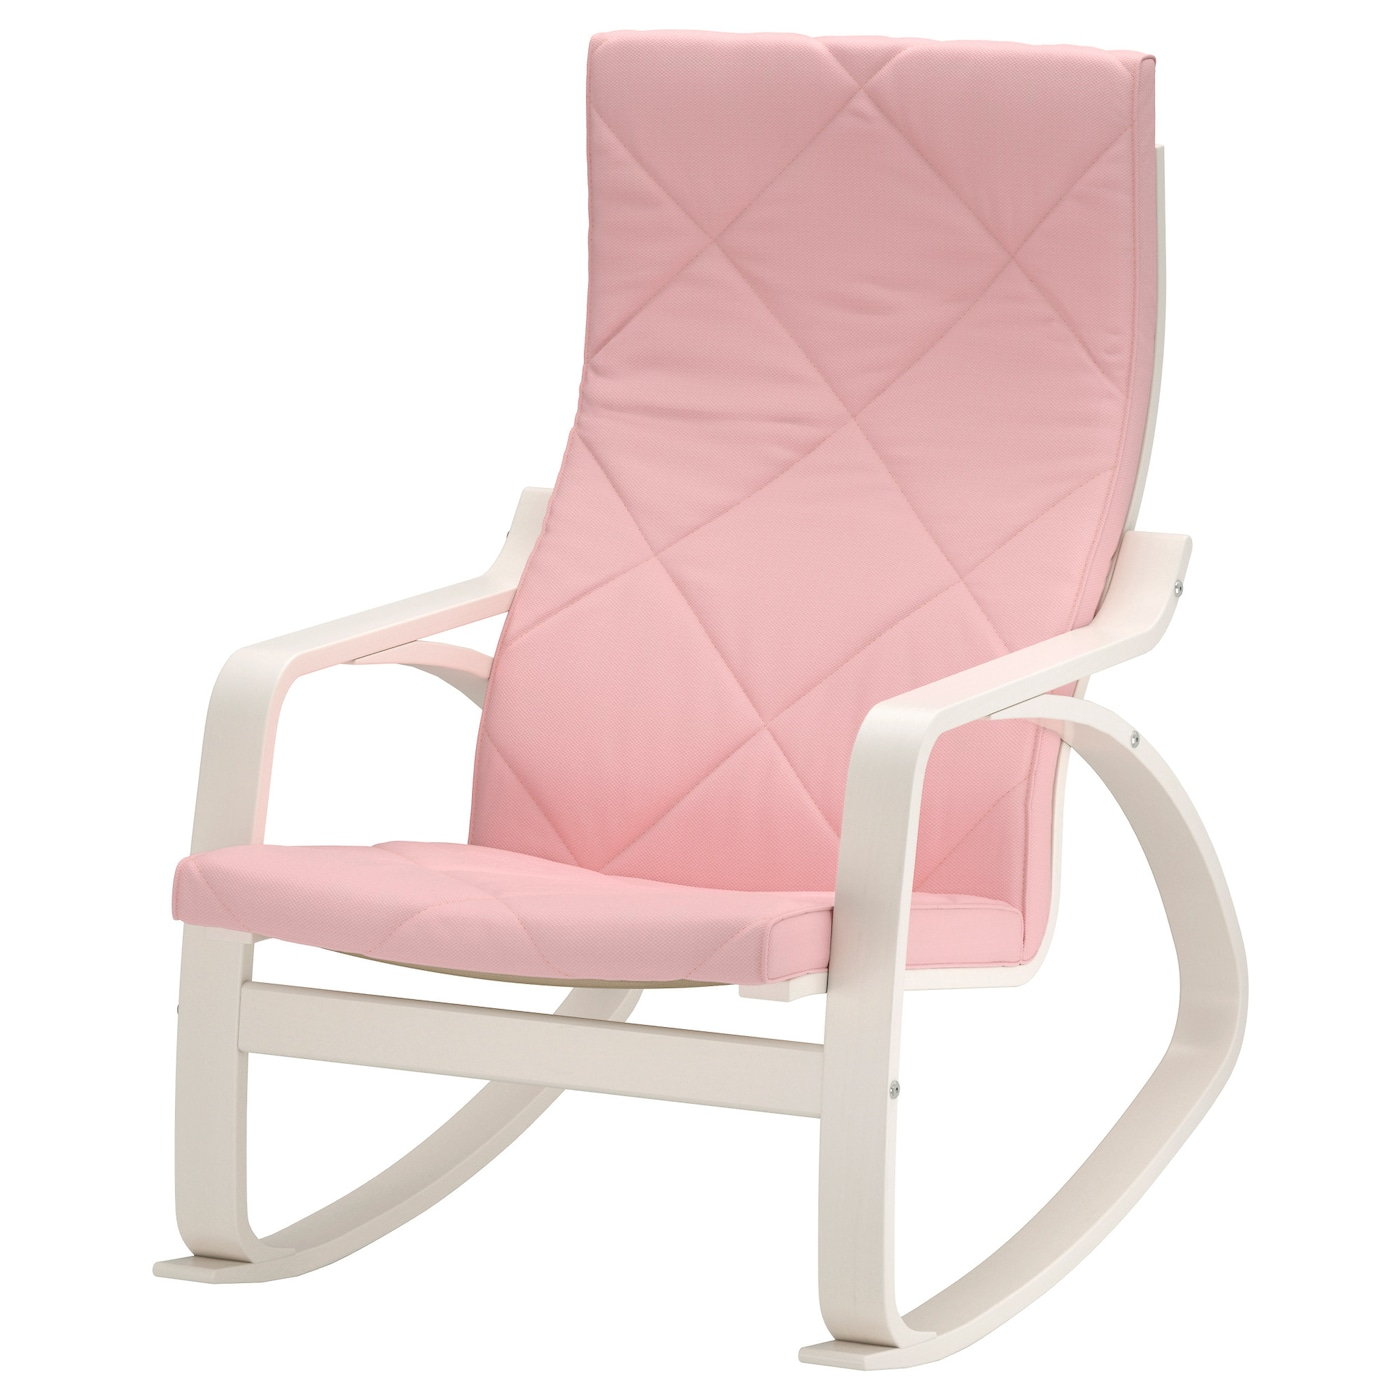 Po ng rocking chair white gr sbo pink ikea for Ikea sofa rosa